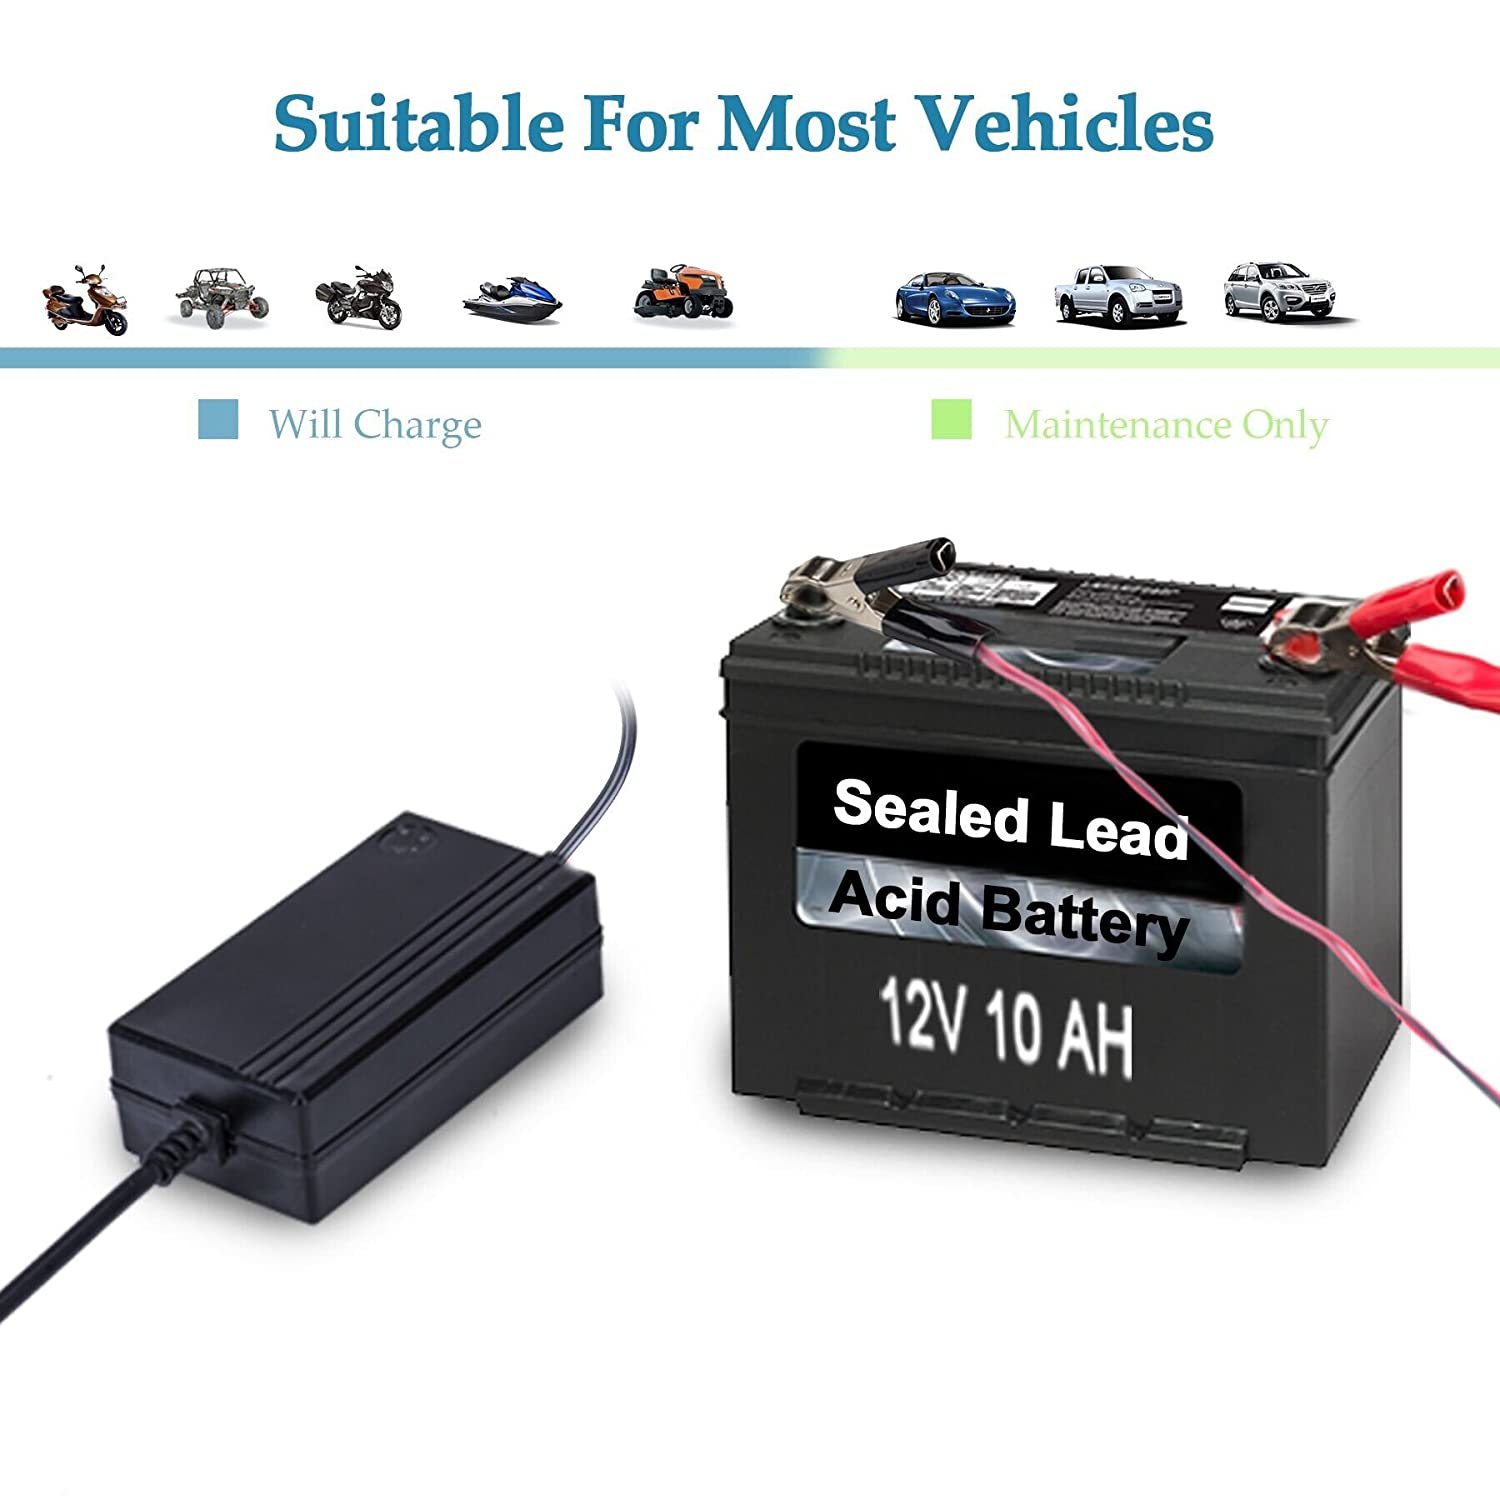 12v To 148v Automatic Lead Acid Battery Charger The Circuit Can Be Used Charge Batteries Maintainer 12 A Trickle For Car Truck Boat Motorcycle Rv Lawn Tractor Automotive